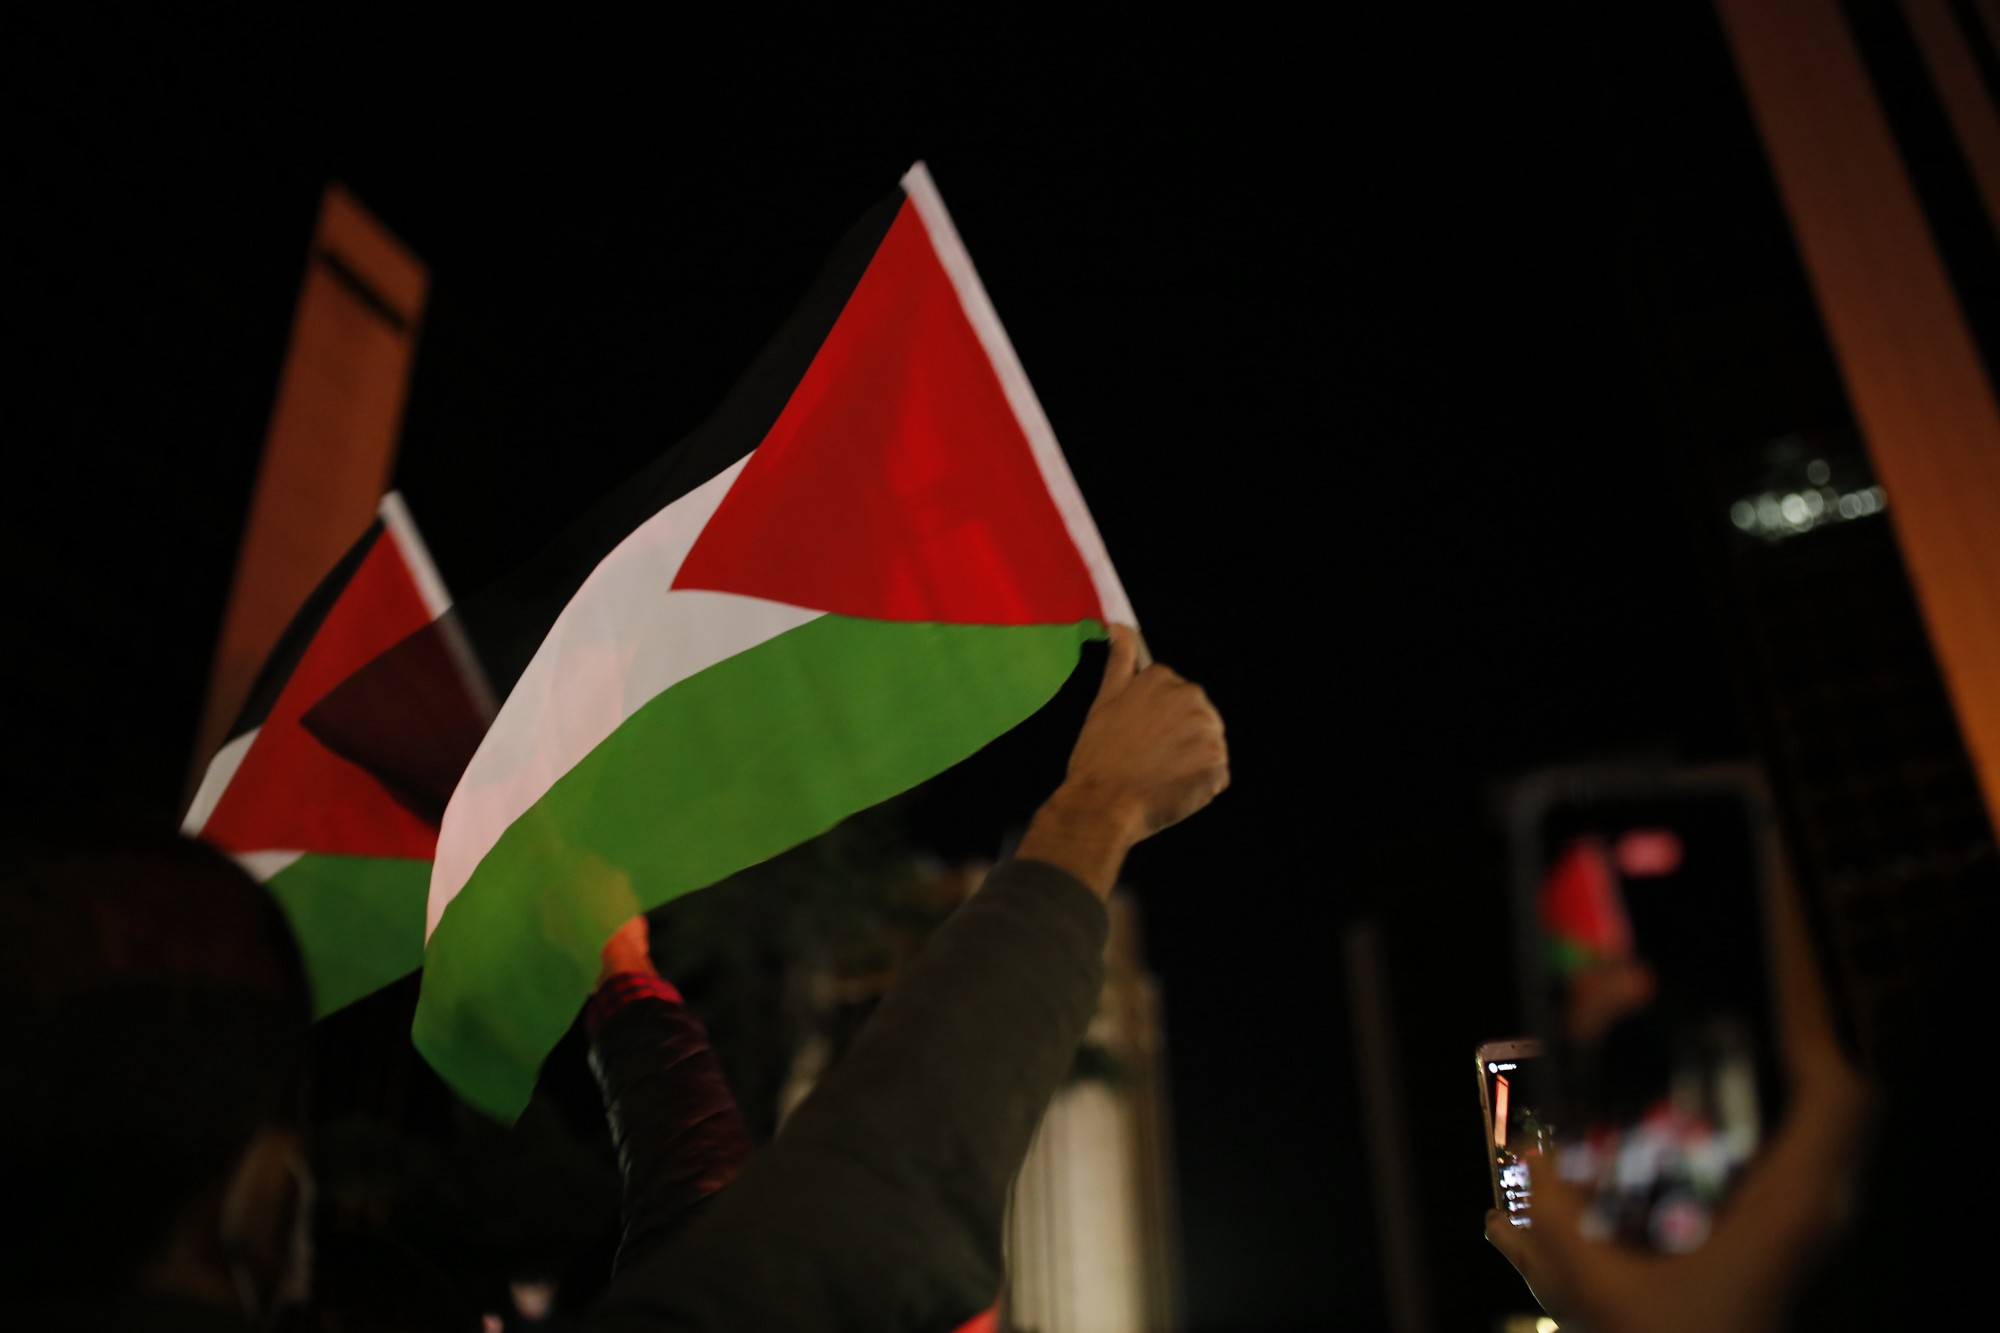 the picture is about Palestine flag